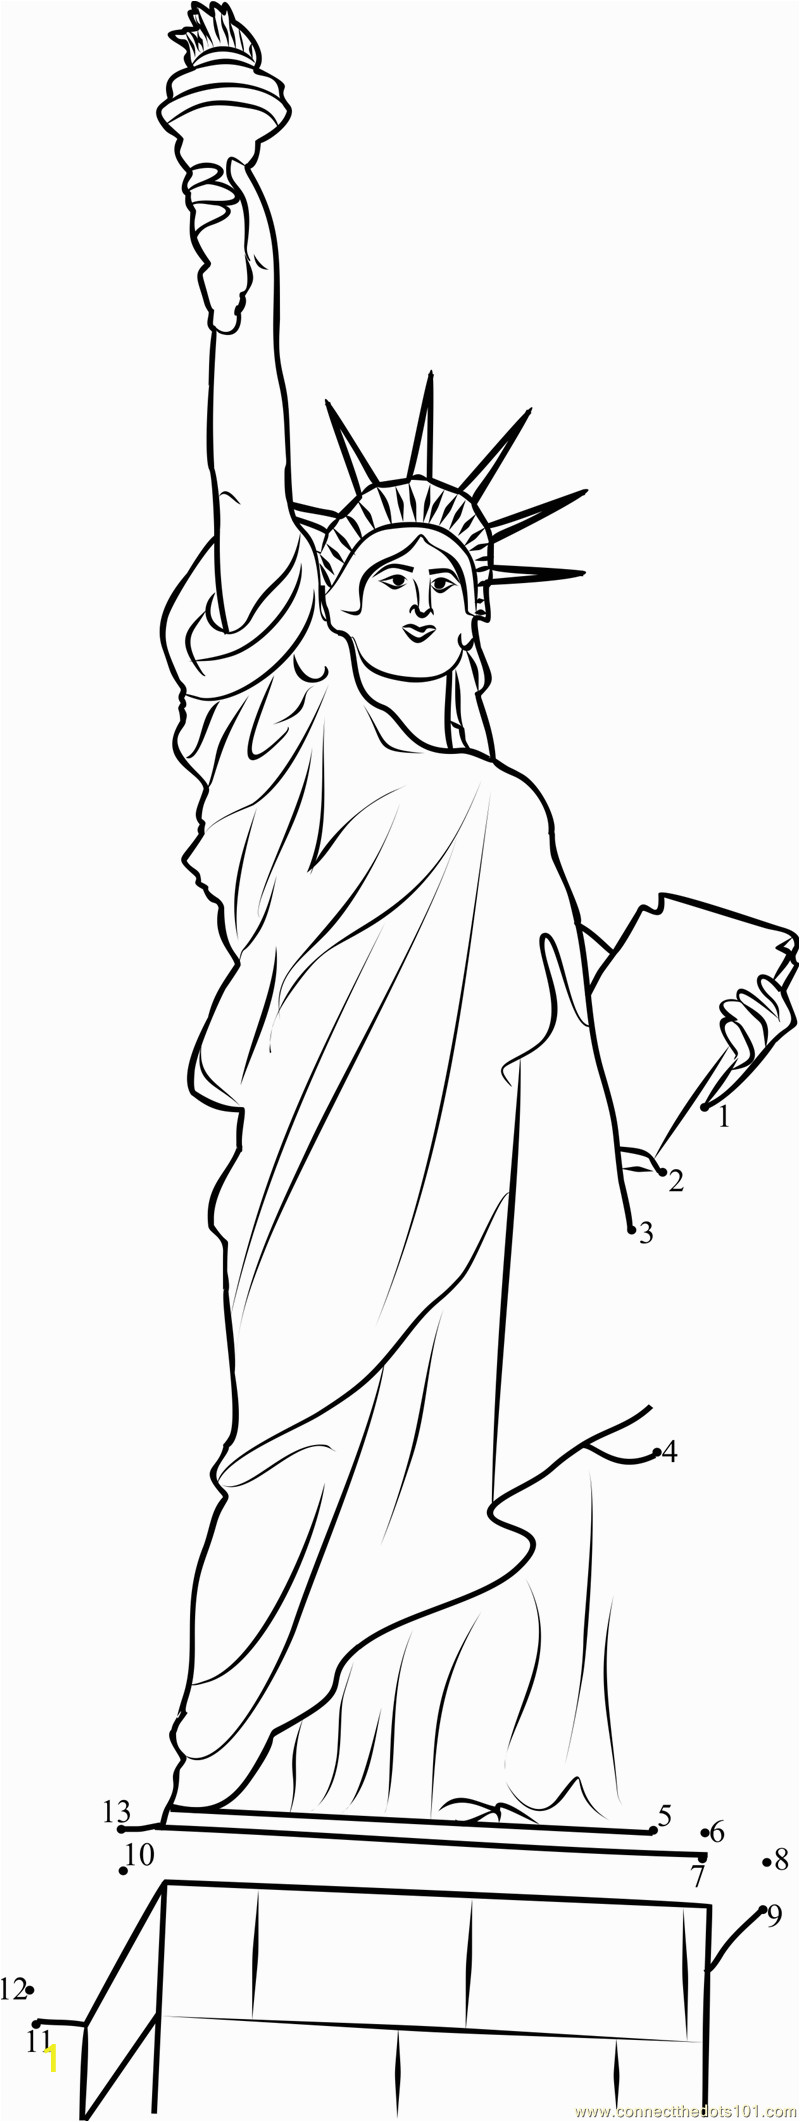 statue of liberty coloring activity sketch templates